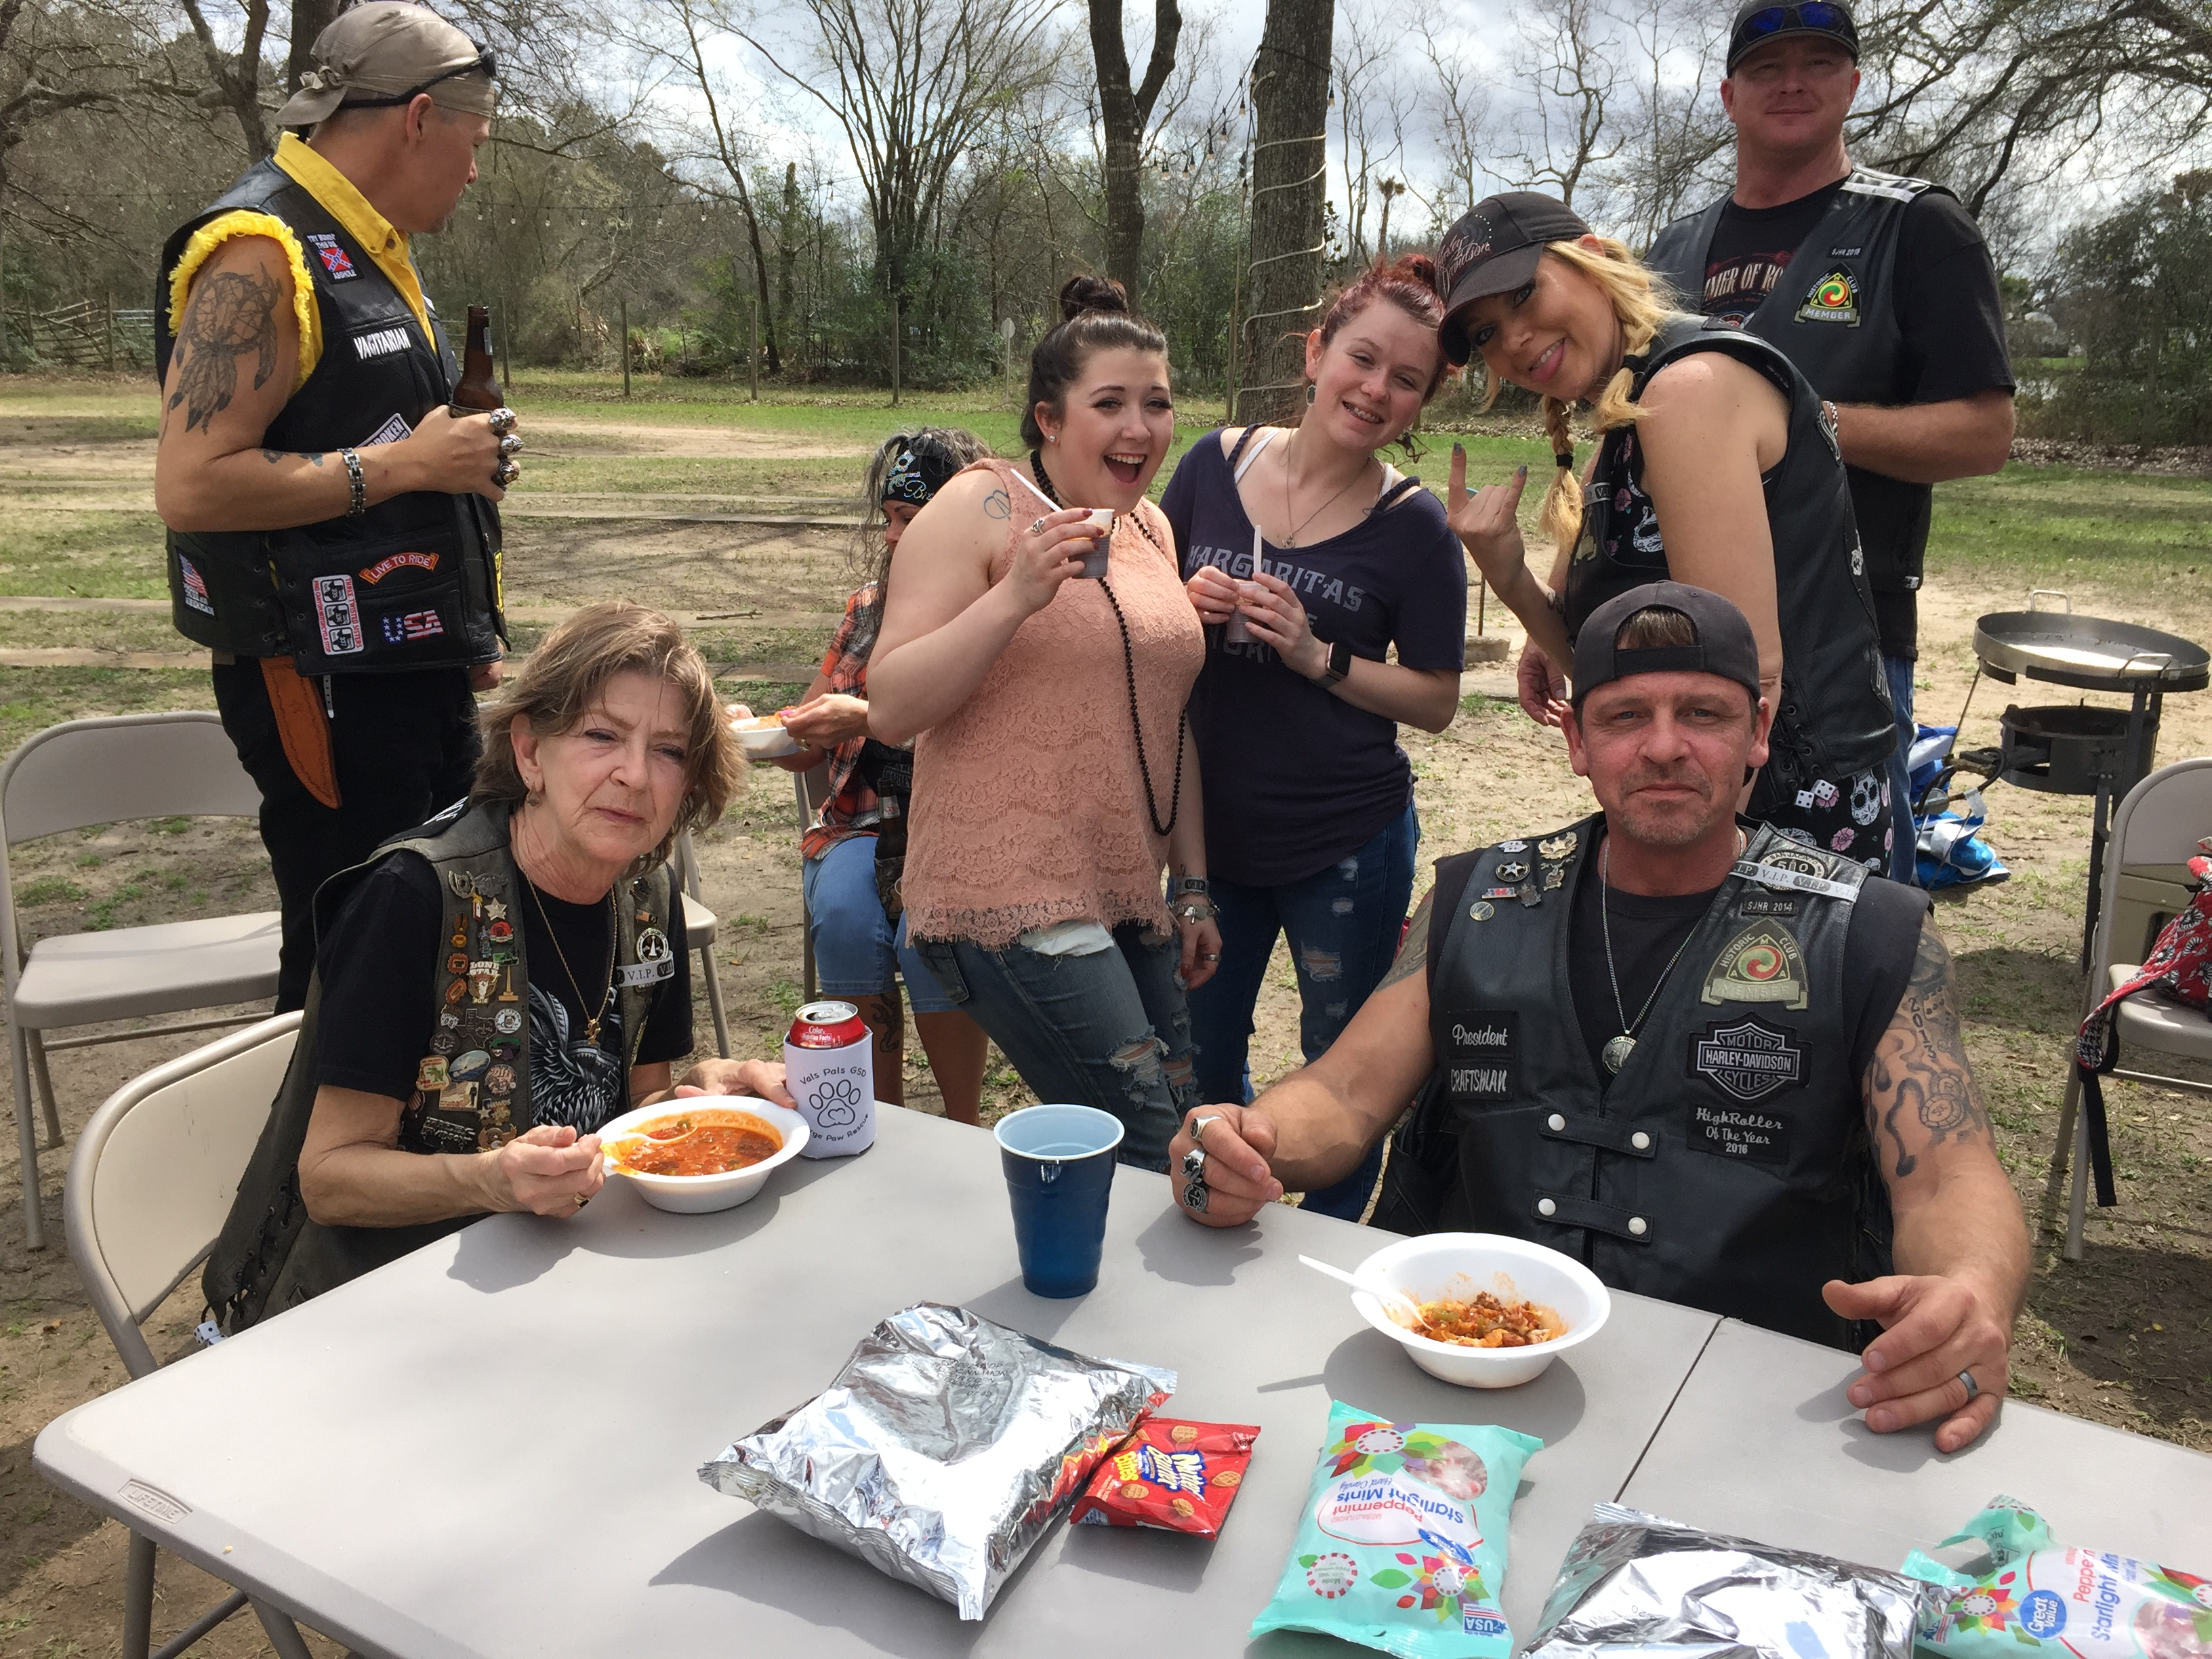 SJHRMC San Jacinto High Roller 2018 Annual Chili Cook-Off – February 2018